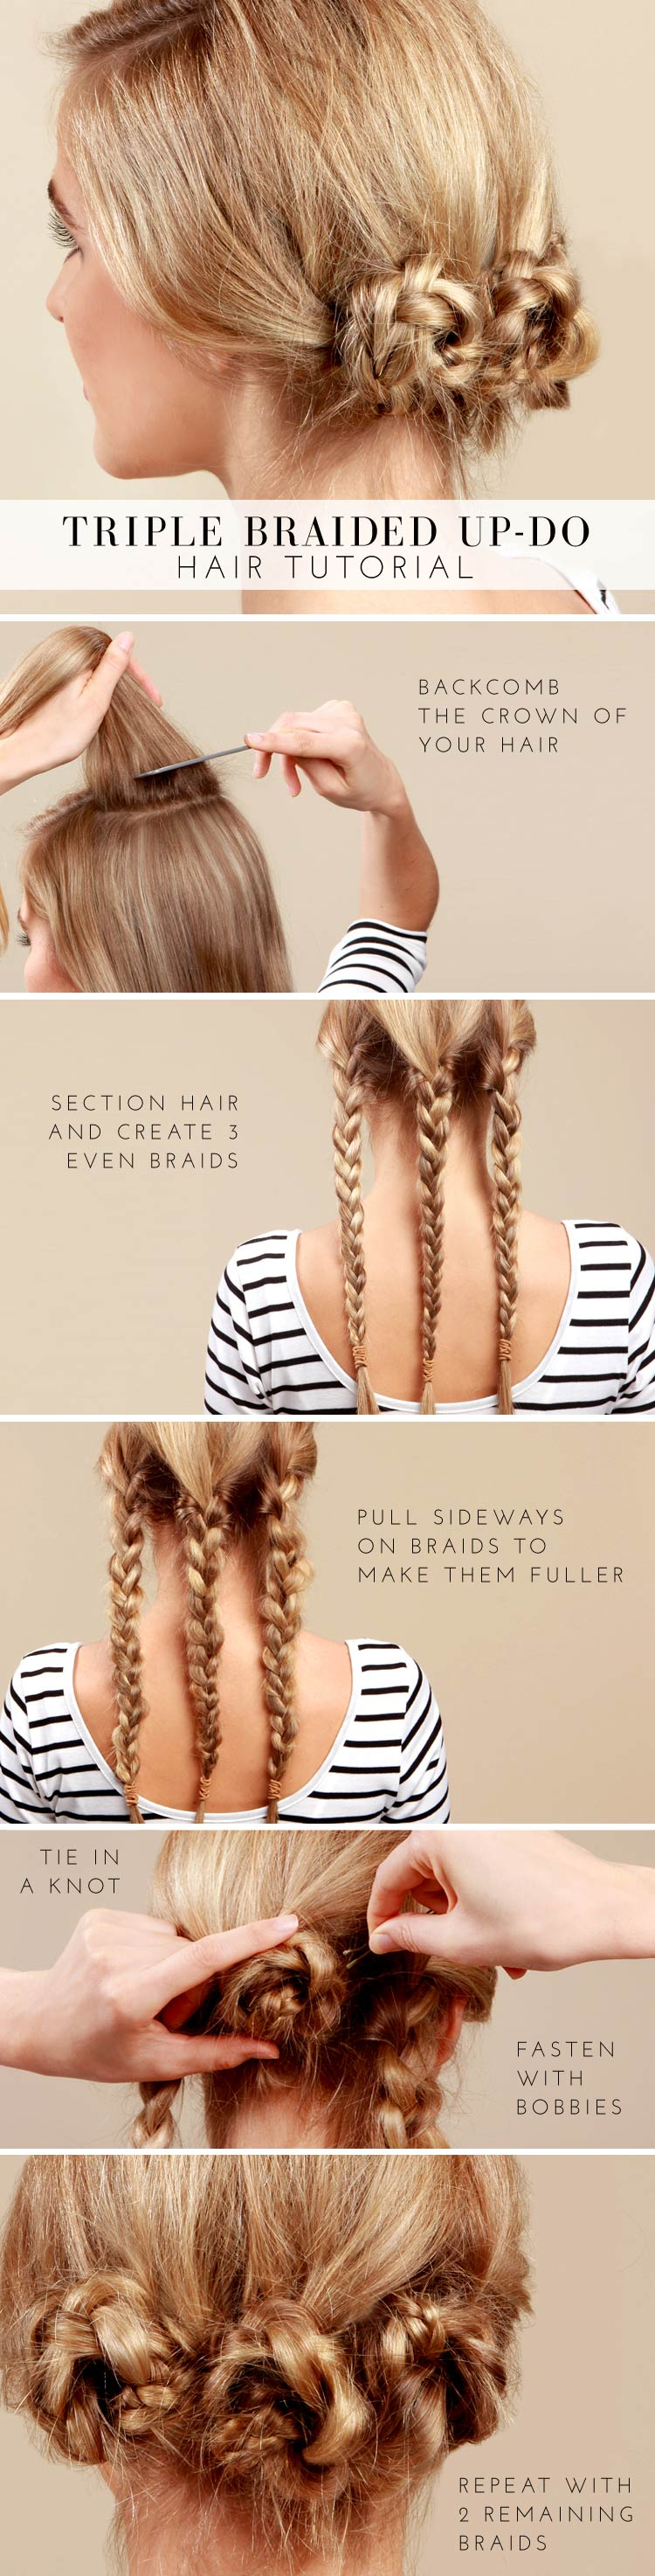 Triple Braided Updo Hairstyle Tutorial